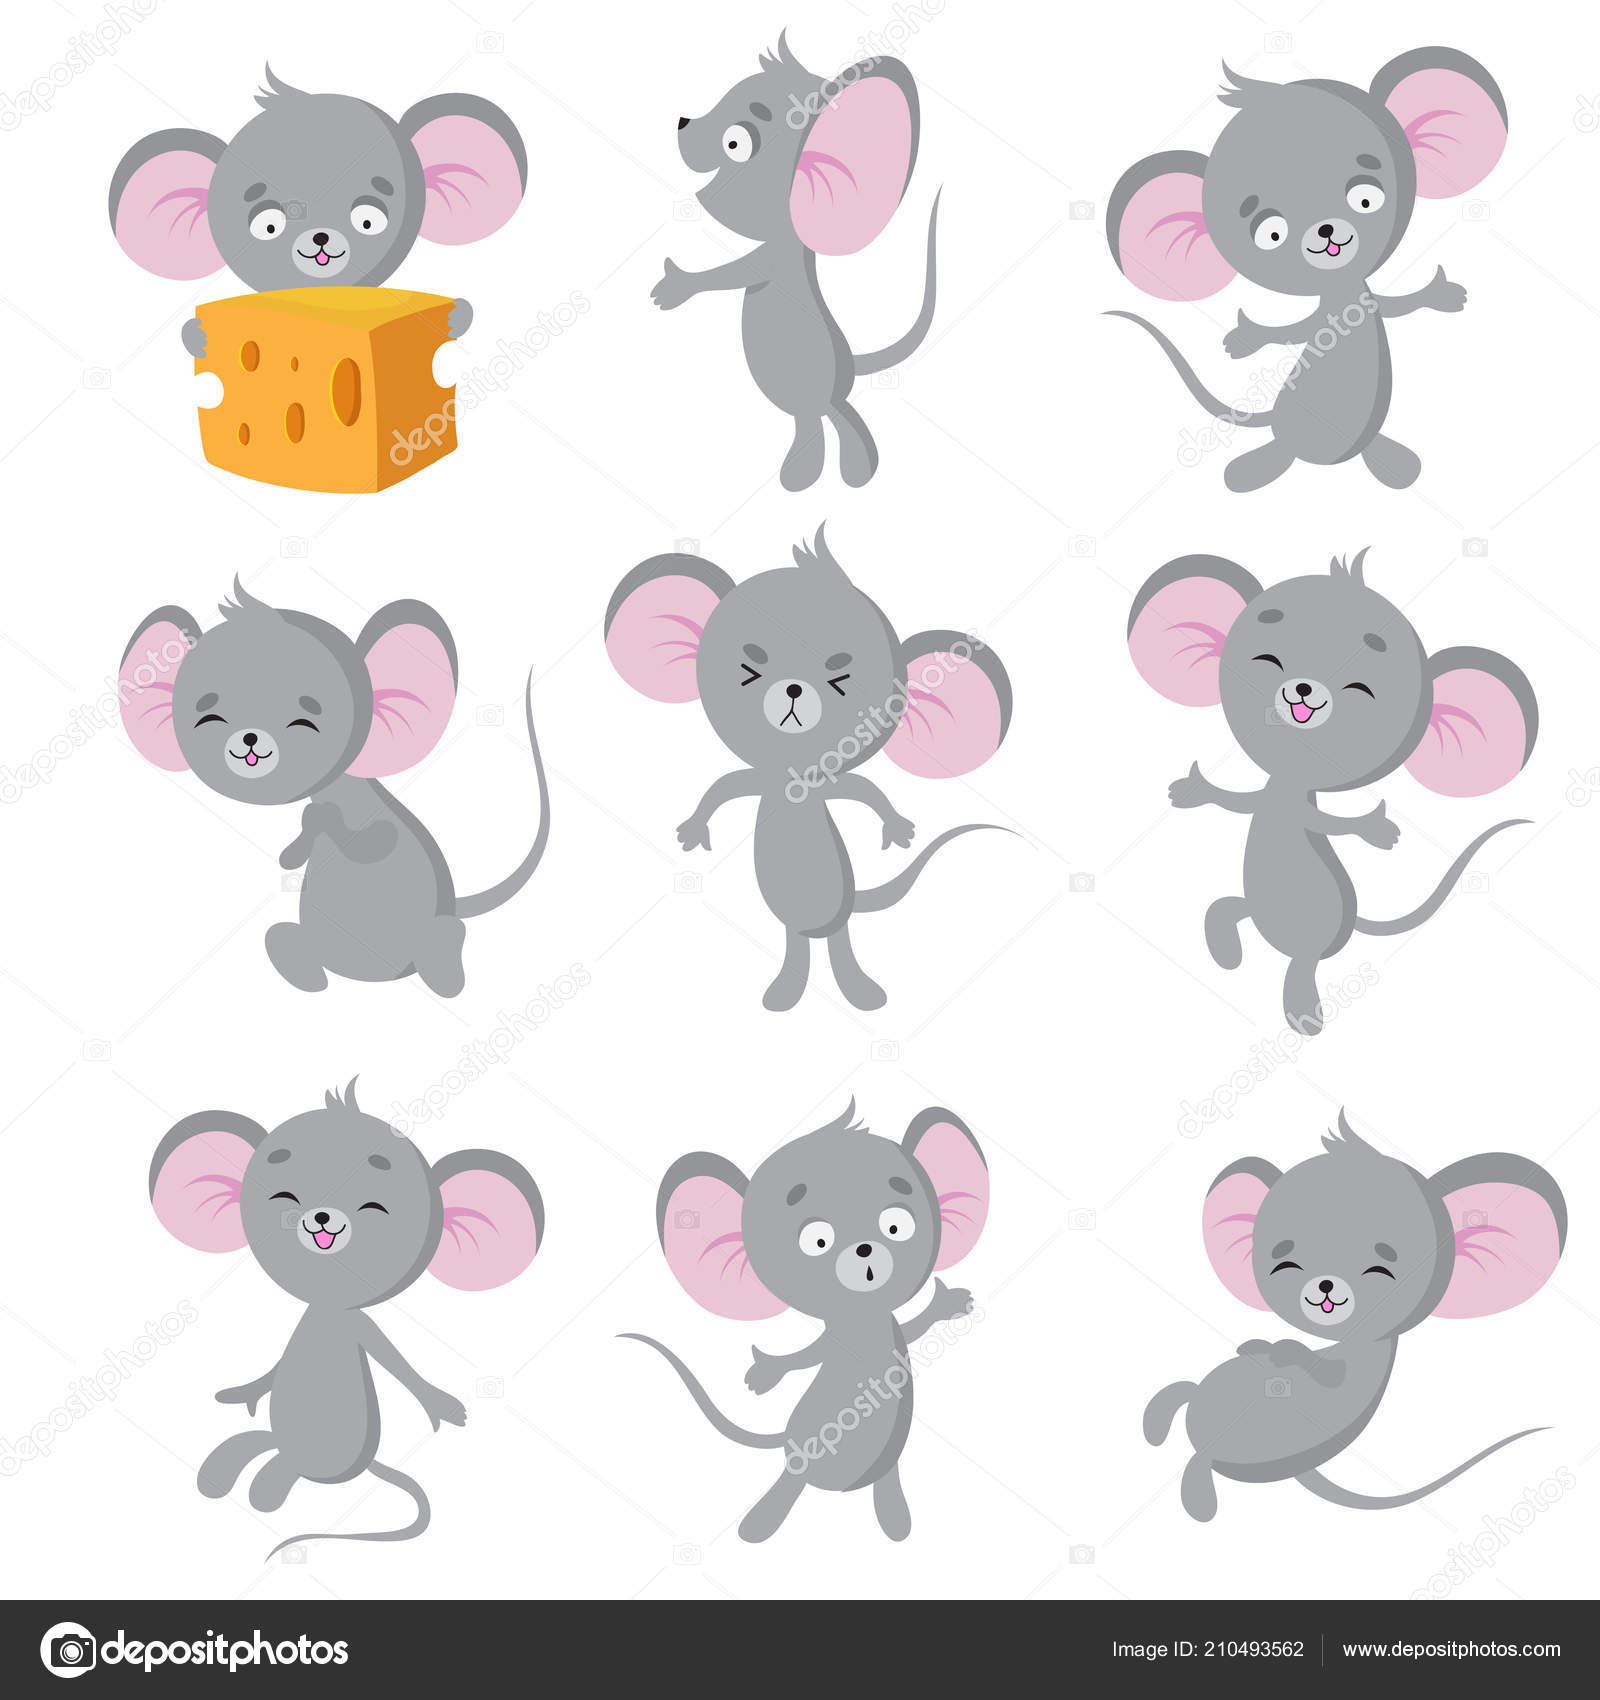 cartoon mouse gray mice in different poses cute wild rat animal